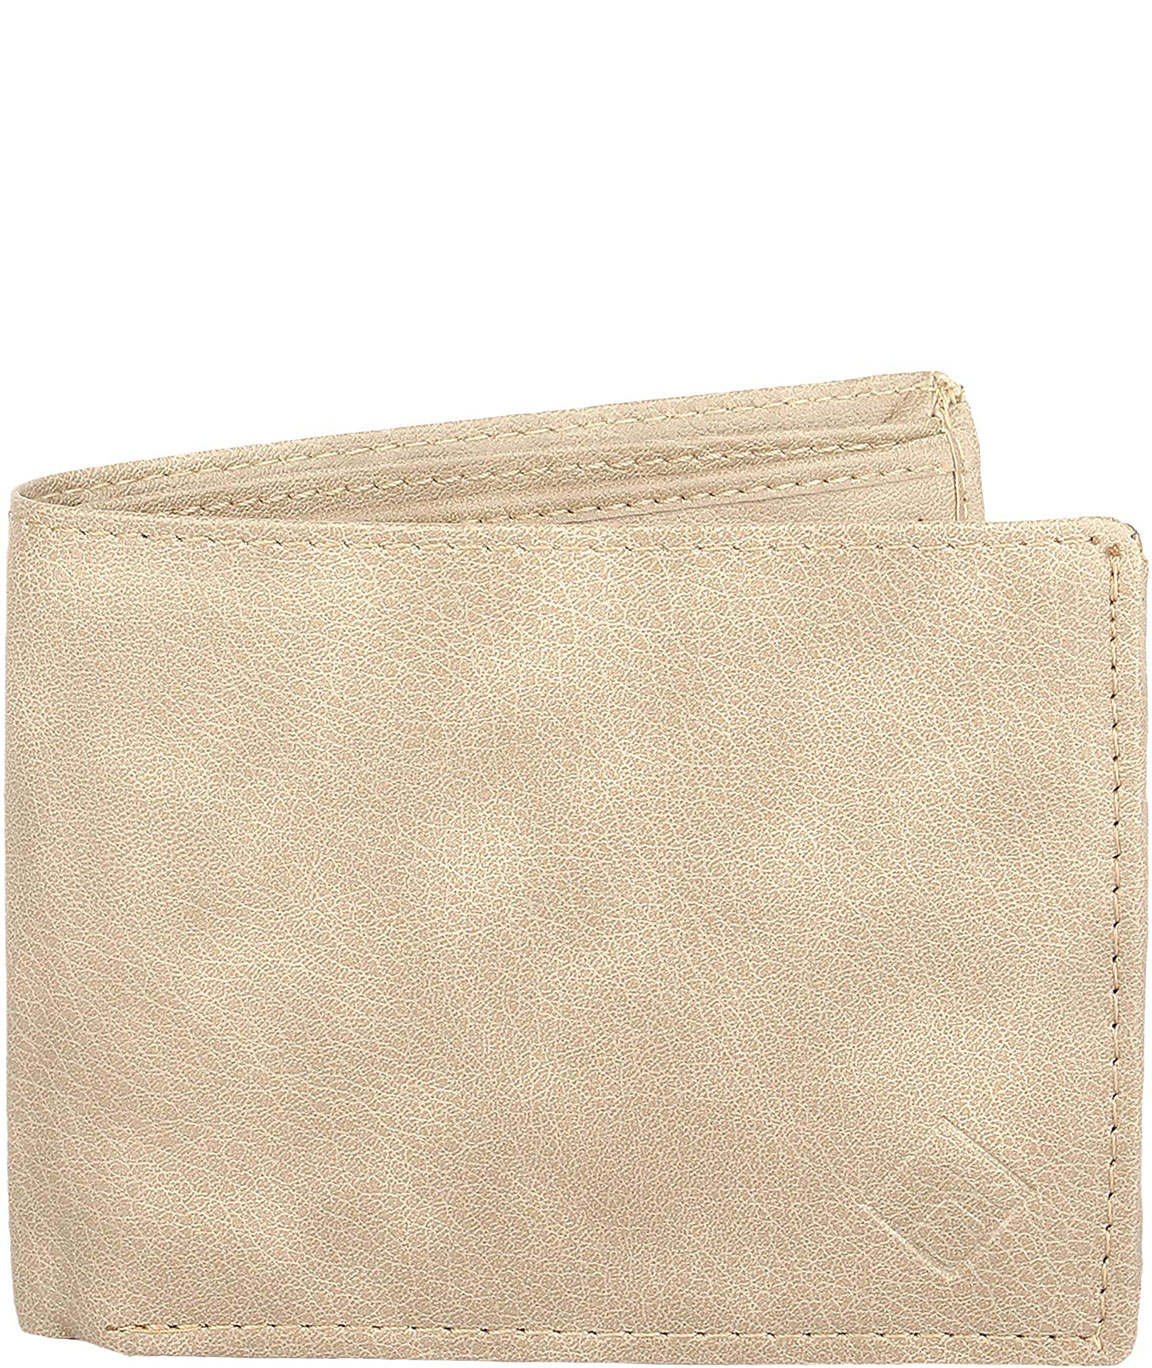 alfami Mens, Gents, Boys Beige Colour Shaded Leather Wallet (Purse), Sleek, Slim, Compact, Two Fold